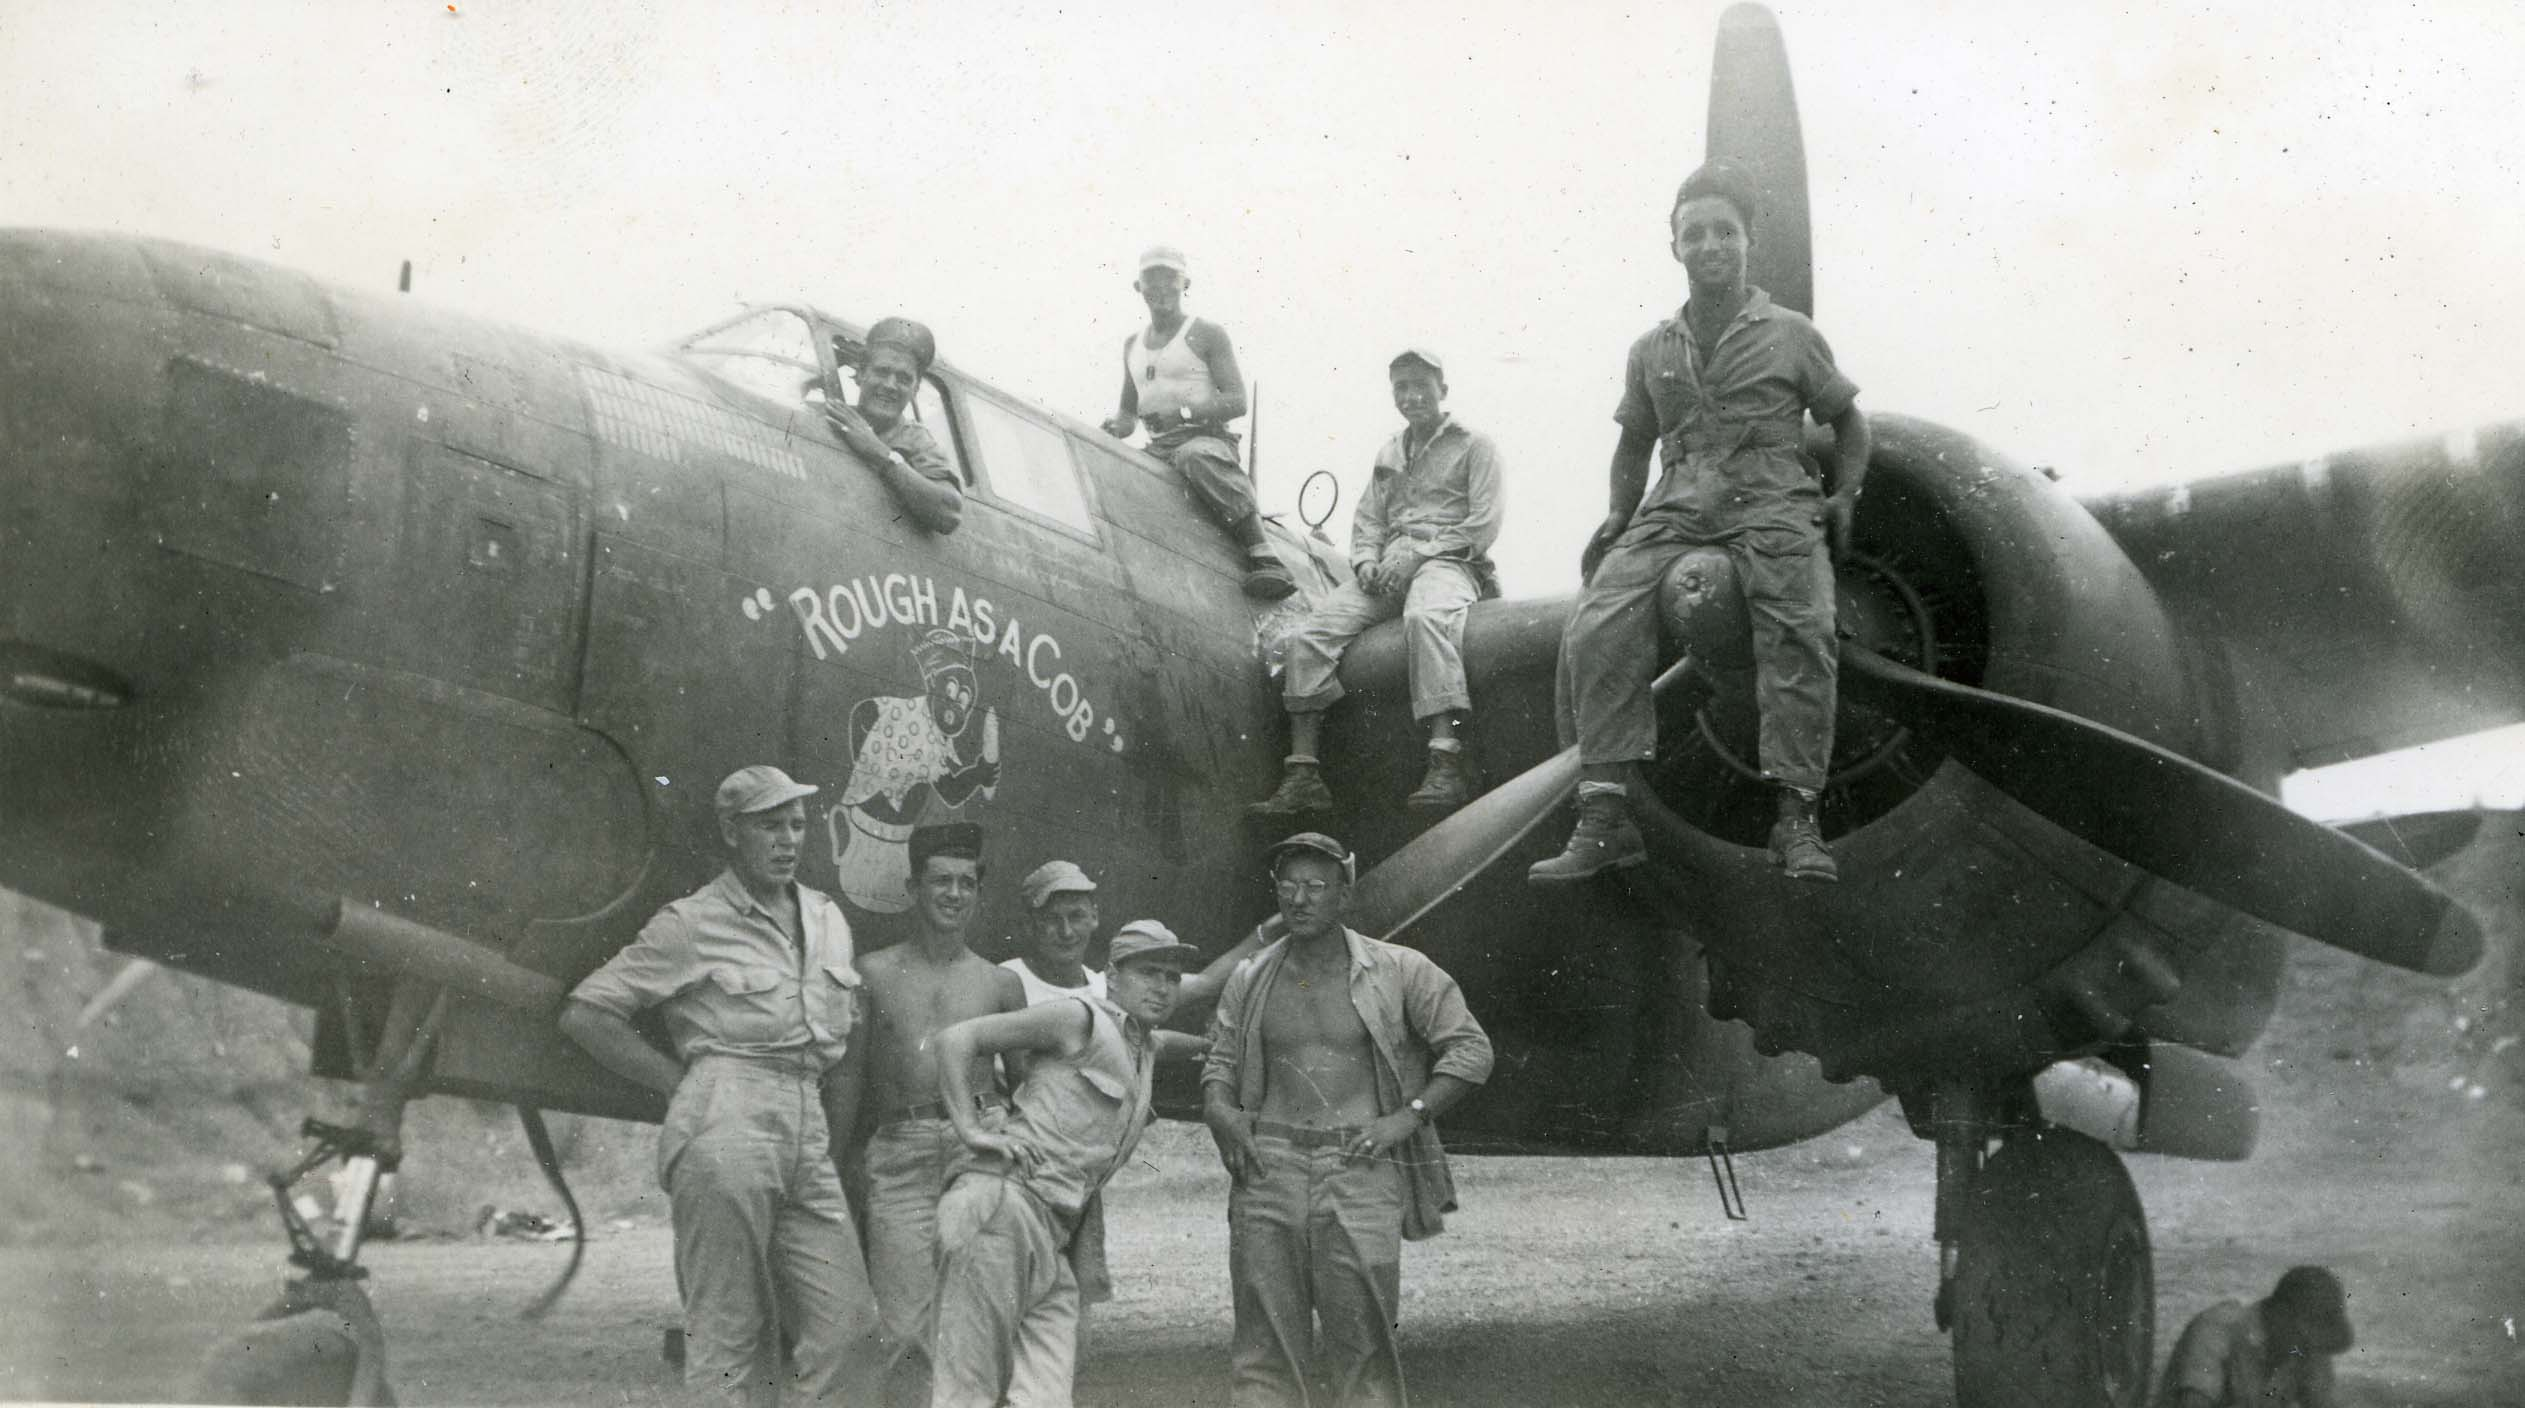 Rough as a Cob : A-20G-10 : 312th Bomb Group : 387th Squadron : Serial #42-54096 : Sharpe 35 (Thomas Sharpe Collection)